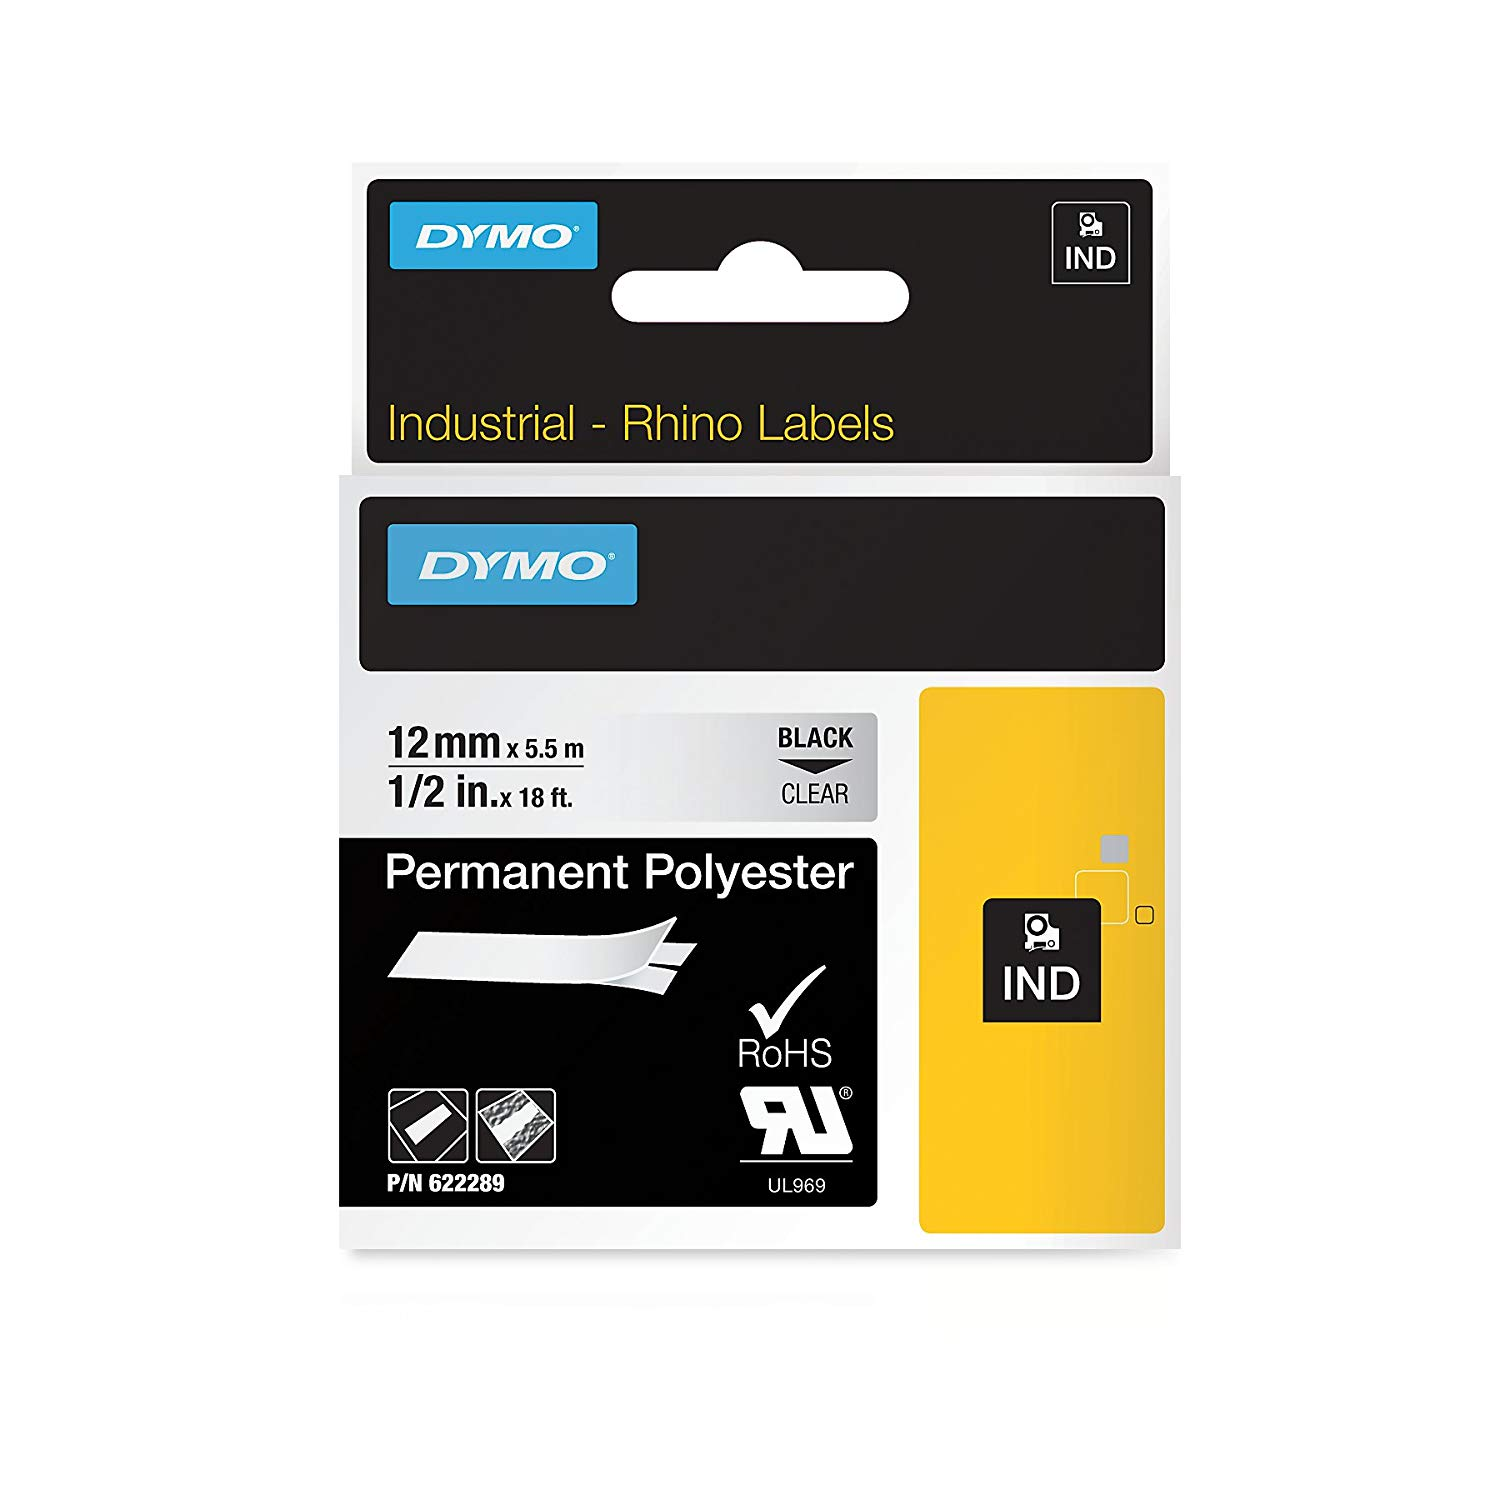 Dymo Rhino 622289 Permanent Polyester Tape 12mm x 5.5m - Black on Clear (pc)